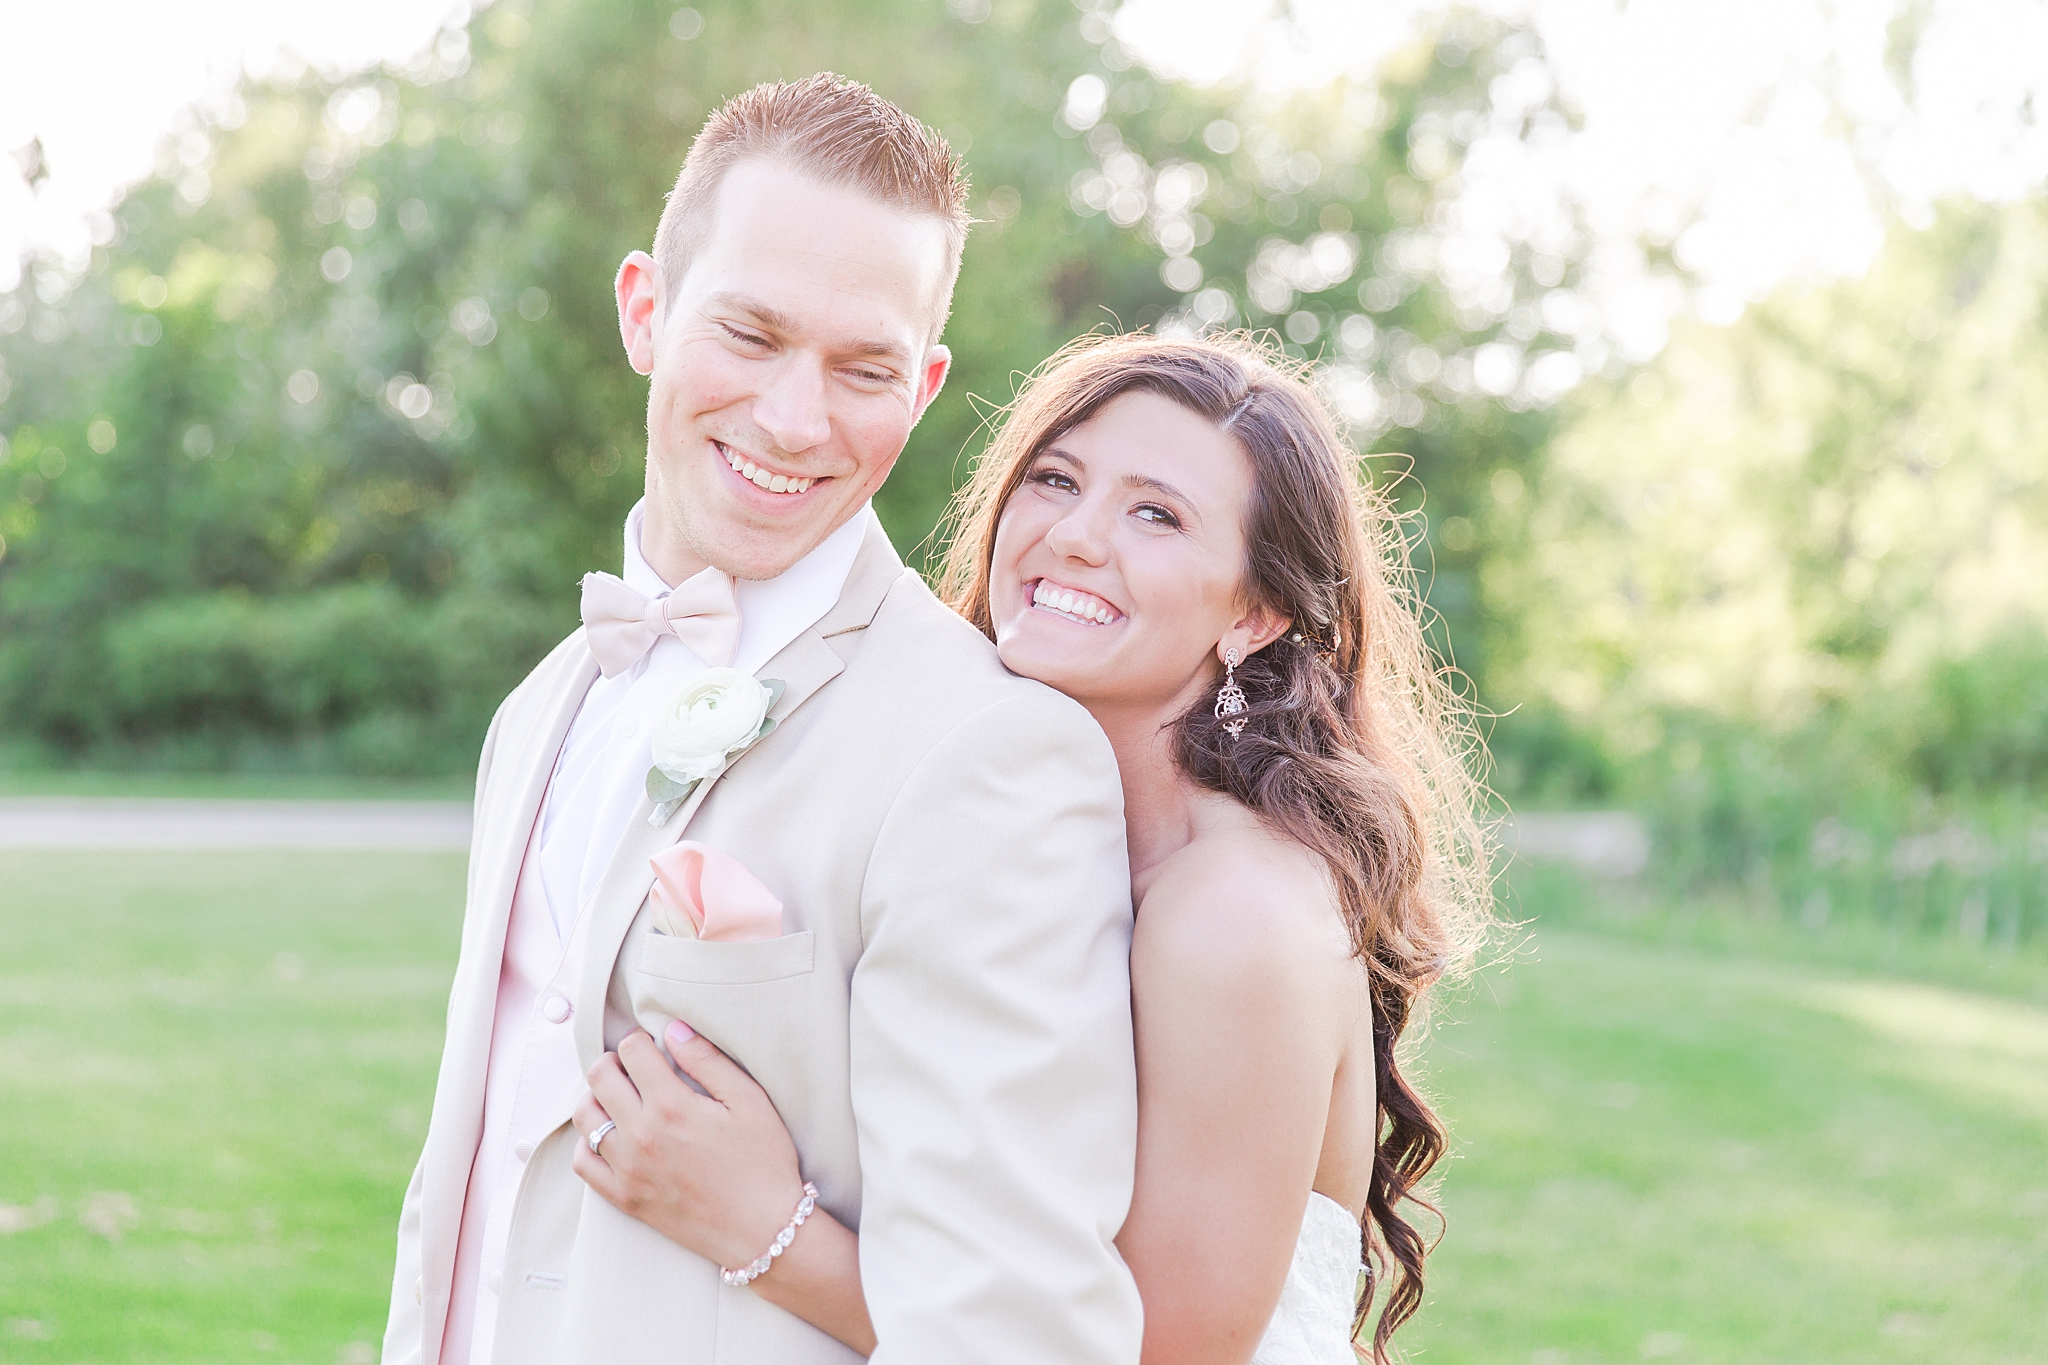 joyful-romantic-modern-laid-back-wedding-photography-in-detroit-ann-arbor-northern-mi-and-chicago-by-courtney-carolyn-photography_0016.jpg